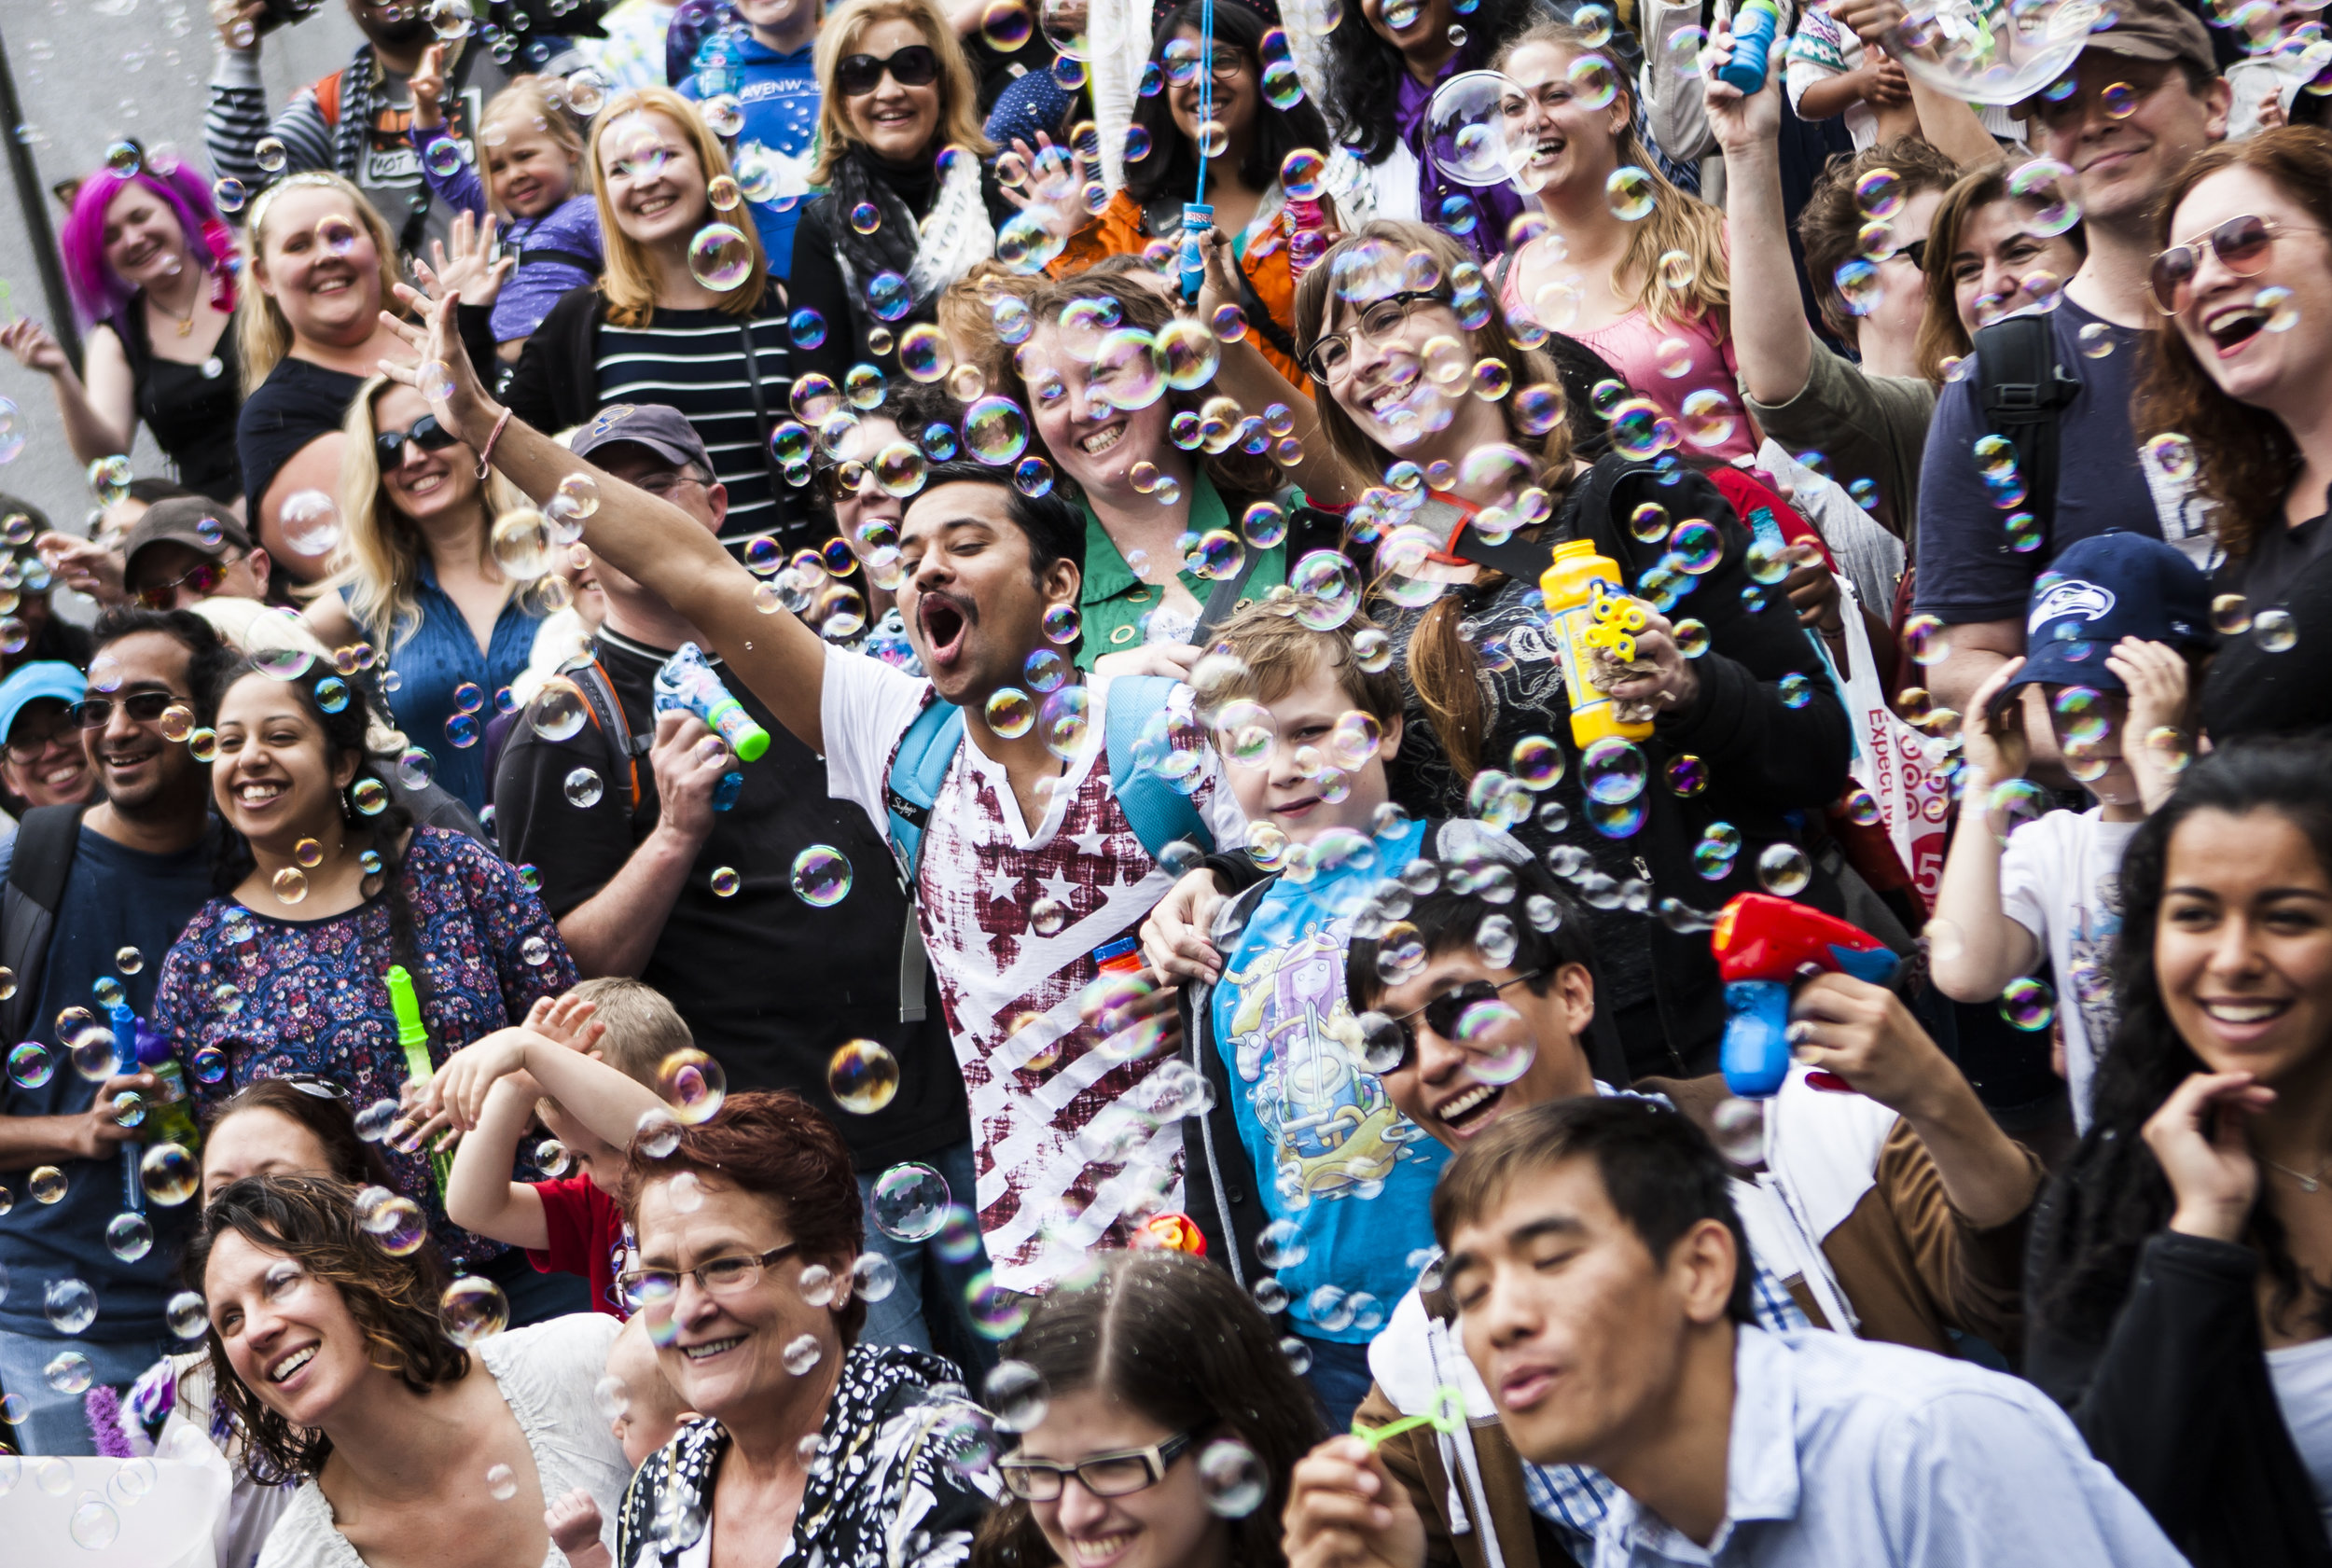 International Bubble Flash Mob participants pose for a group photo post flash mob at Westlake Park in downtown Seattle, Wash. on July 9, 2016. London also participated in the flash mob. (Lacey Young, seattlepi.com)